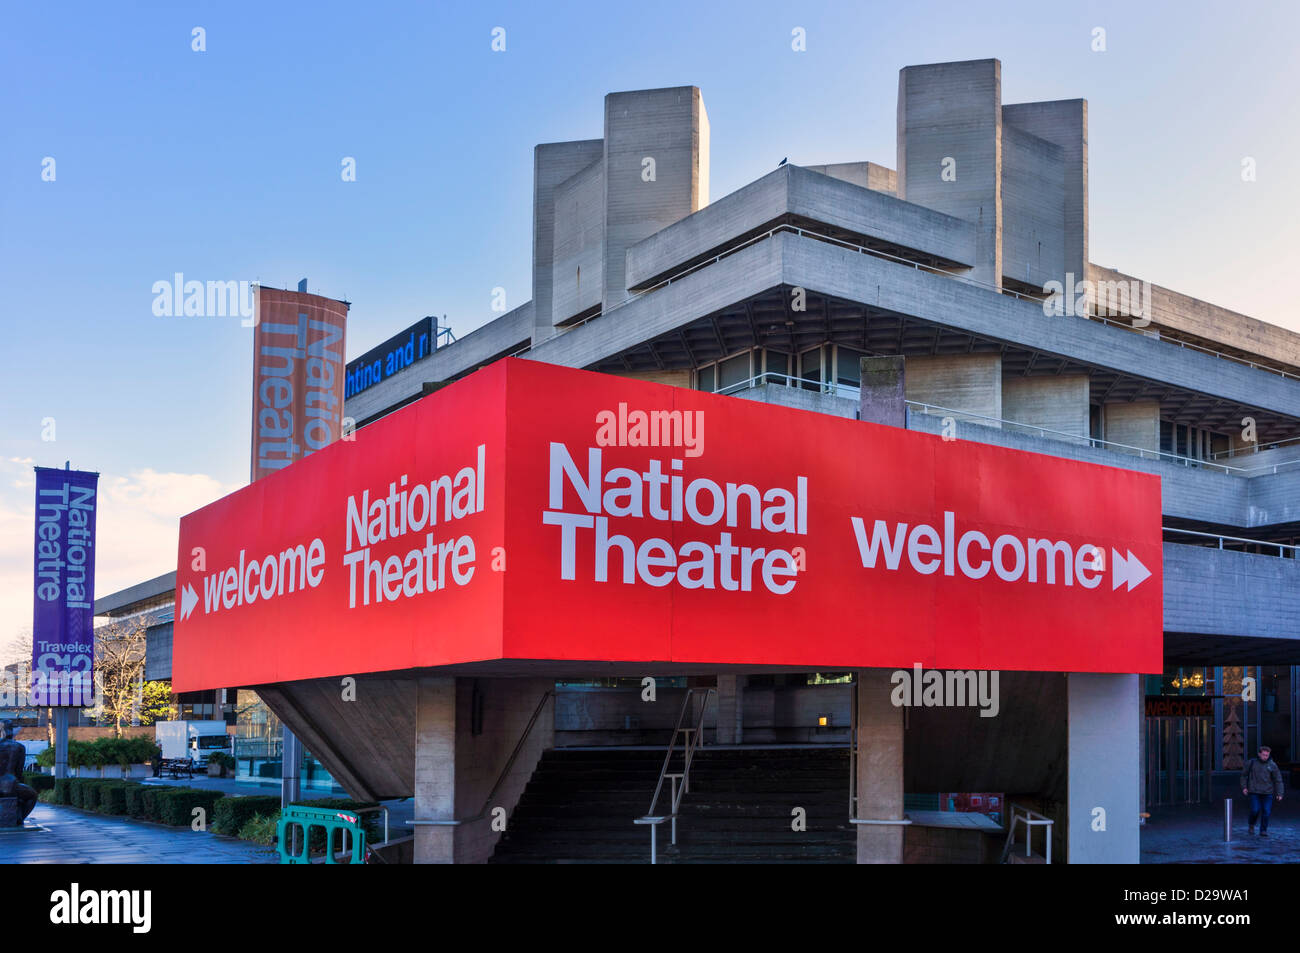 National Theatre, South Bank, London, UK - Stock Image